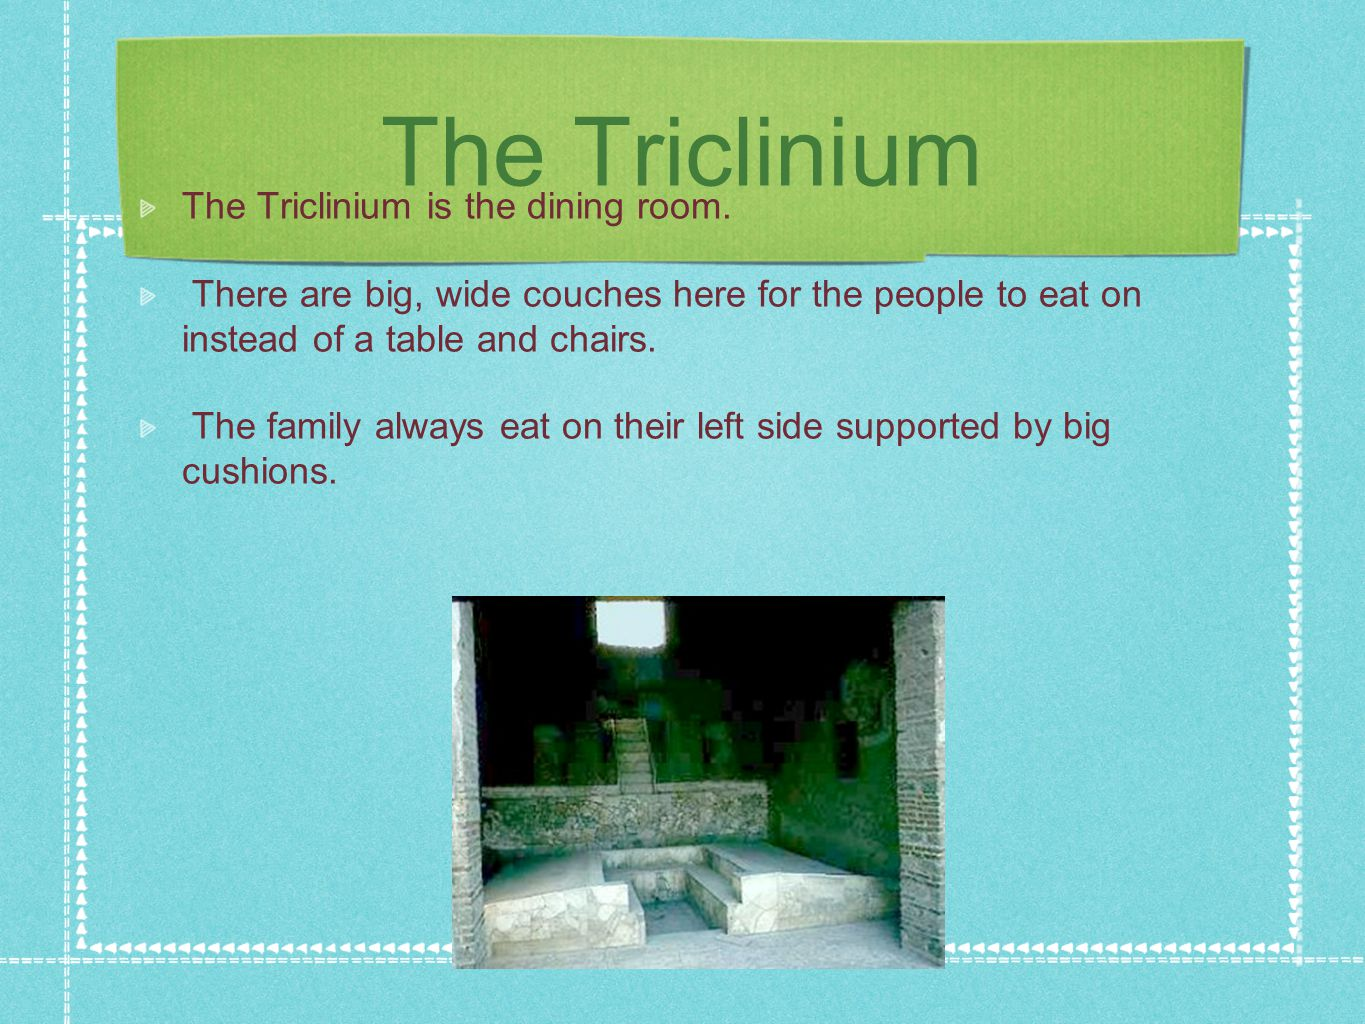 The Triclinium The Triclinium is the dining room. There are big, wide couches here for the people to eat on instead of a table and chairs. The family